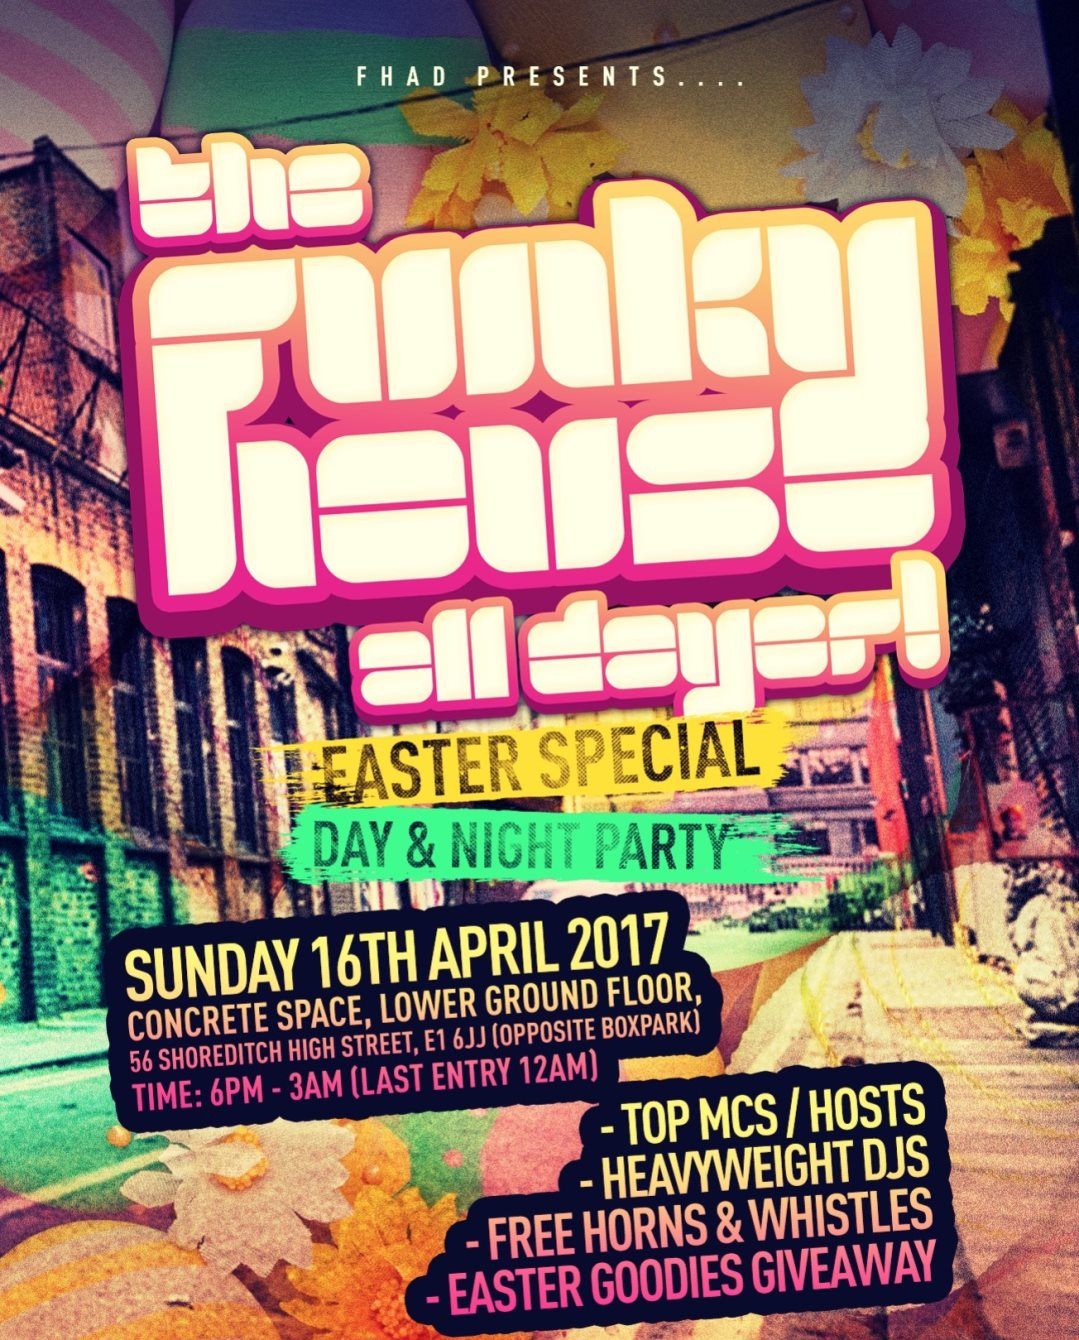 The Funky House All Dayer - Easter Special [Day & Night Party] - Flyer front